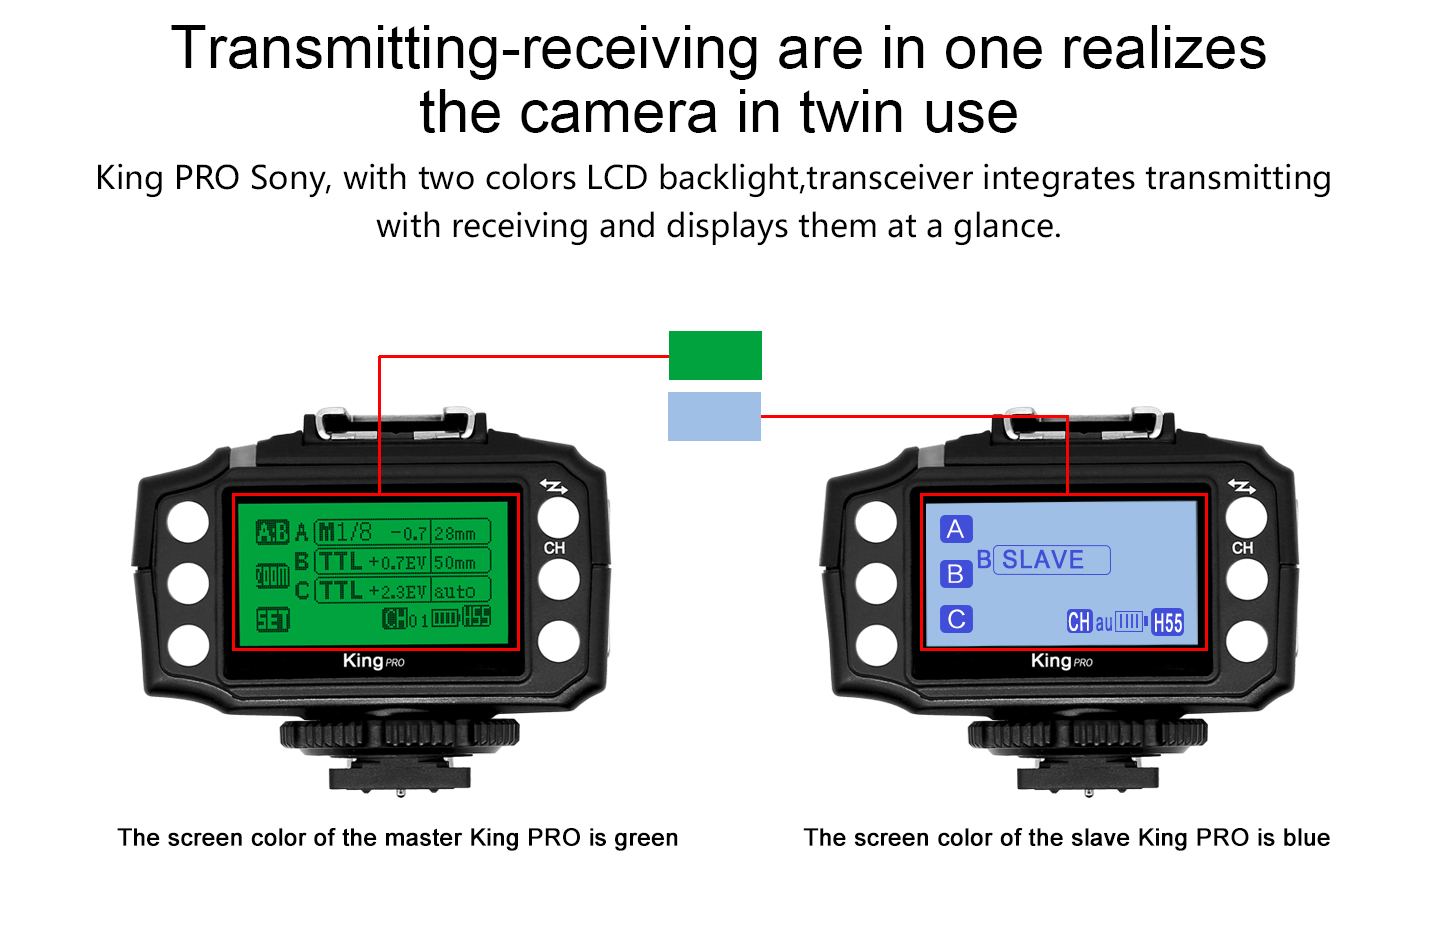 Transmitting-receving are in one realizes the camera in twin use